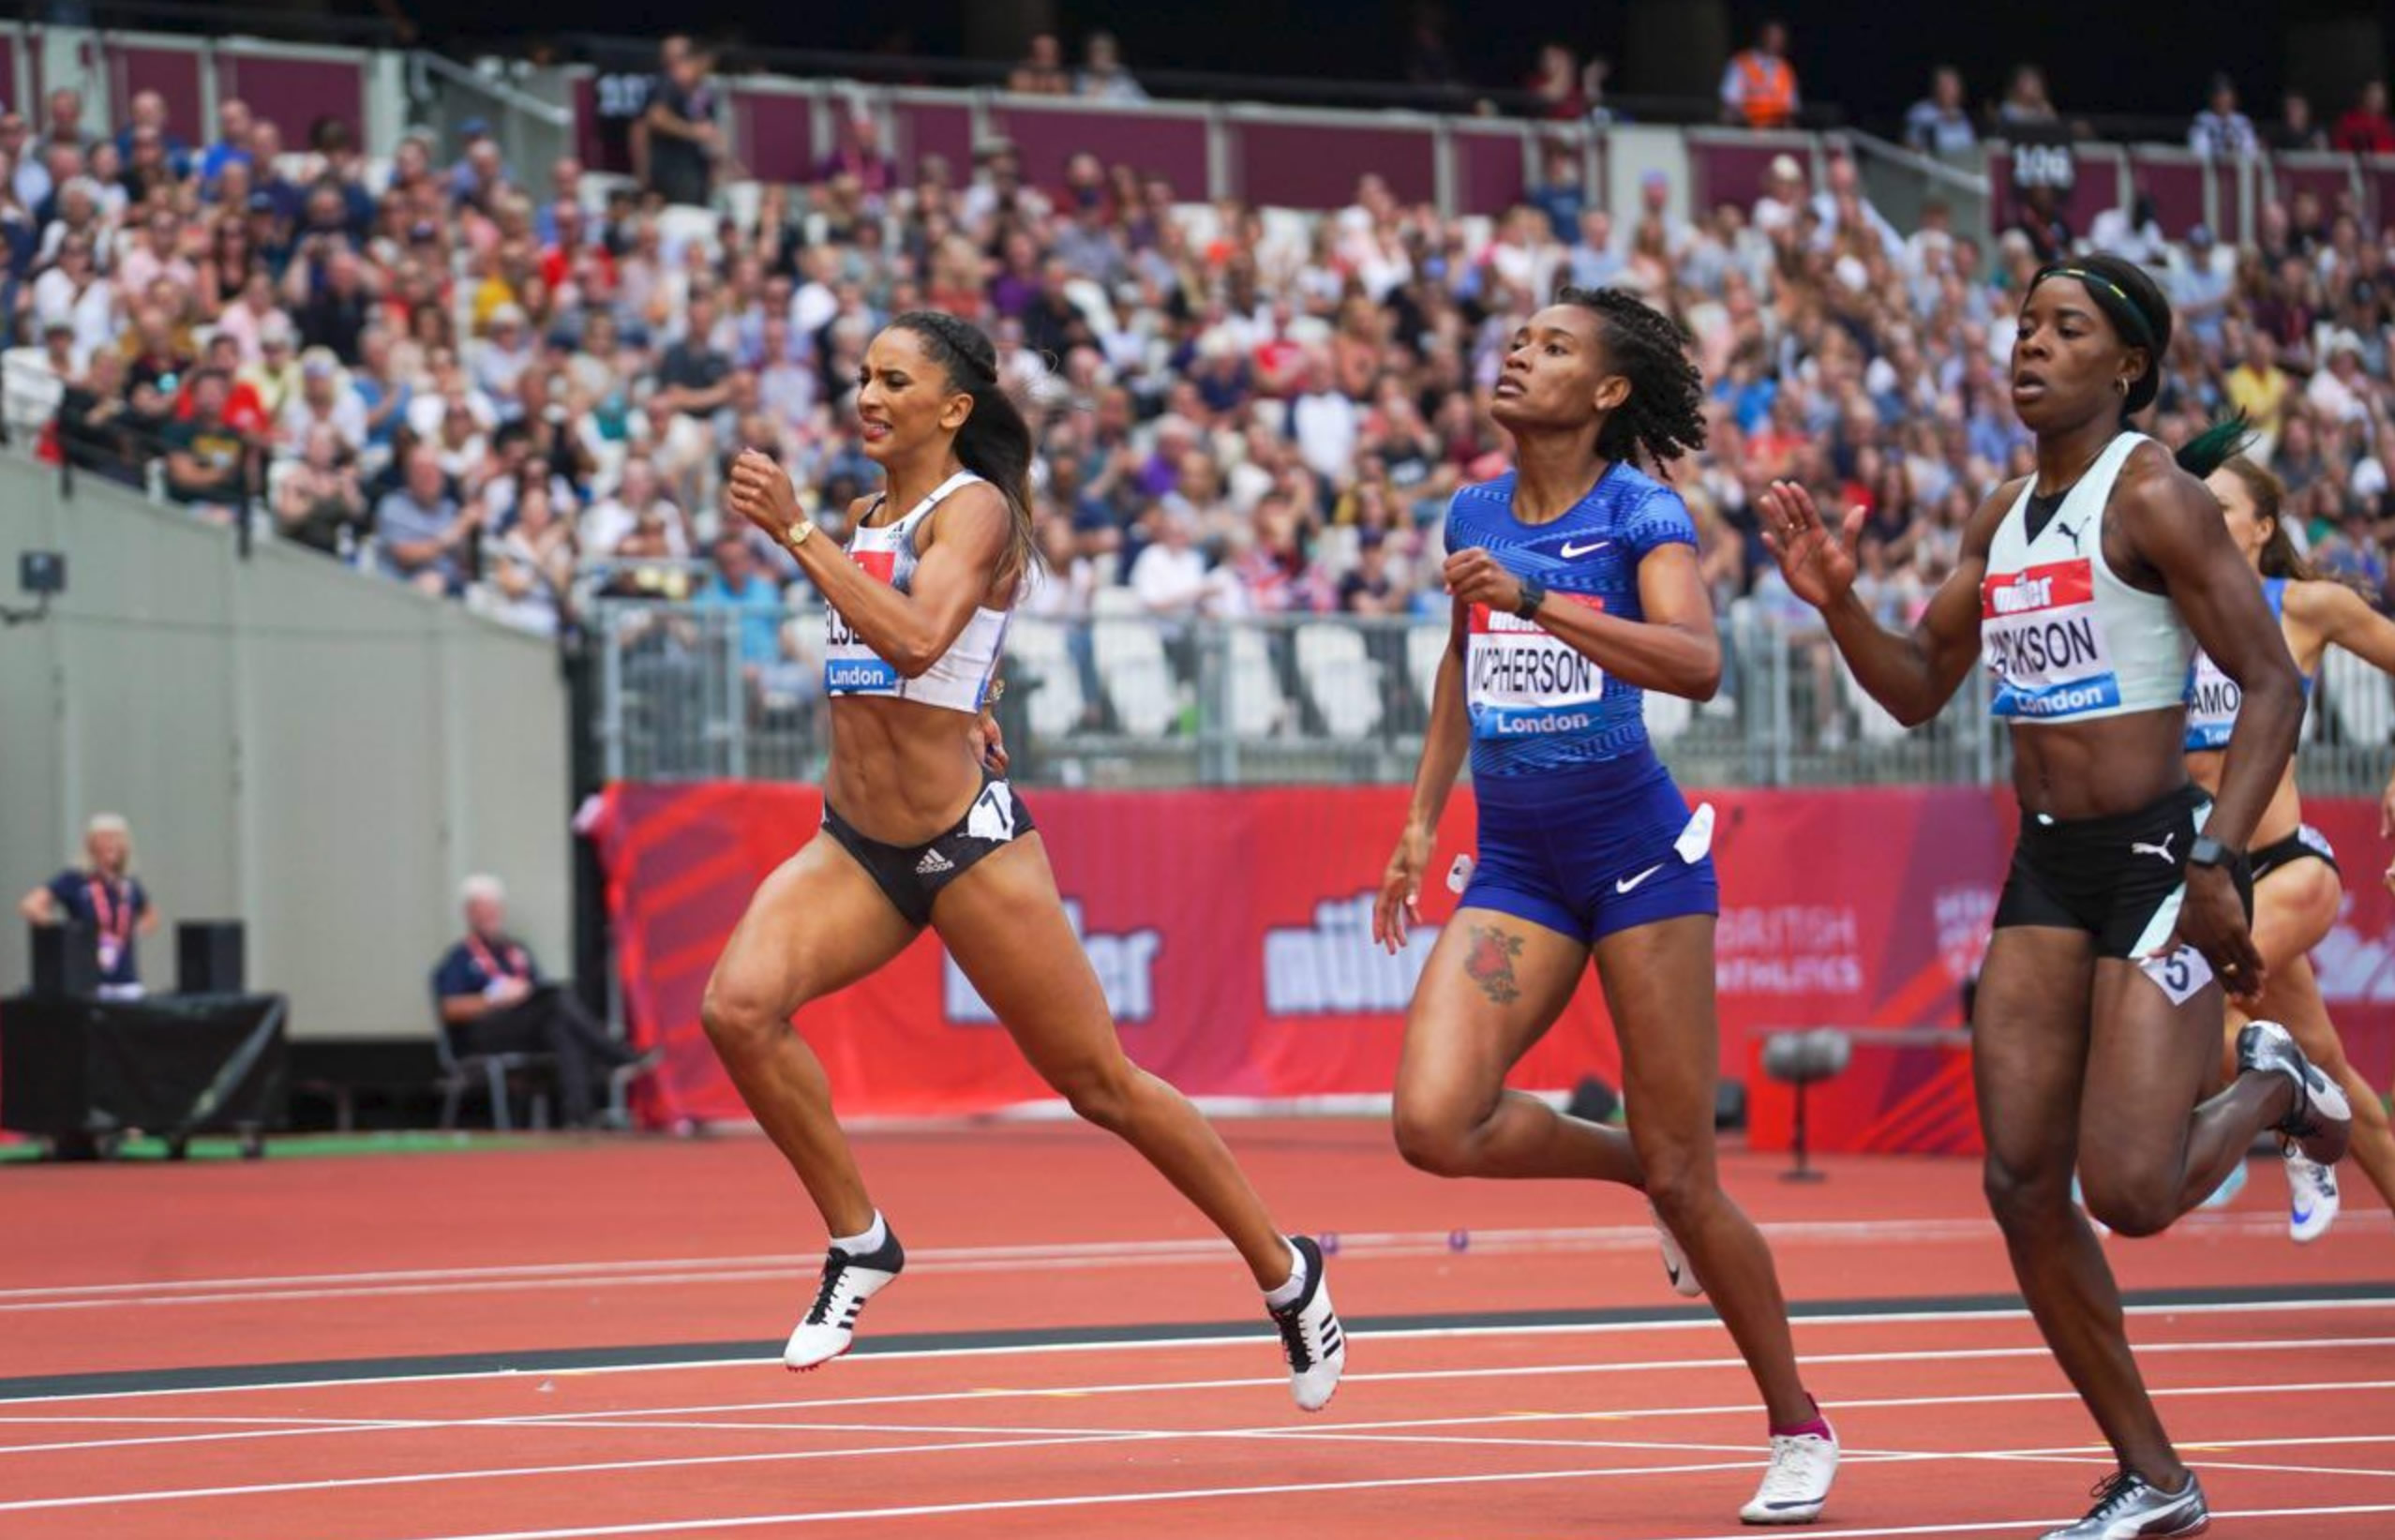 Shericka Jackson, Stephenie Ann McPherson 1-2 in 400m race in London